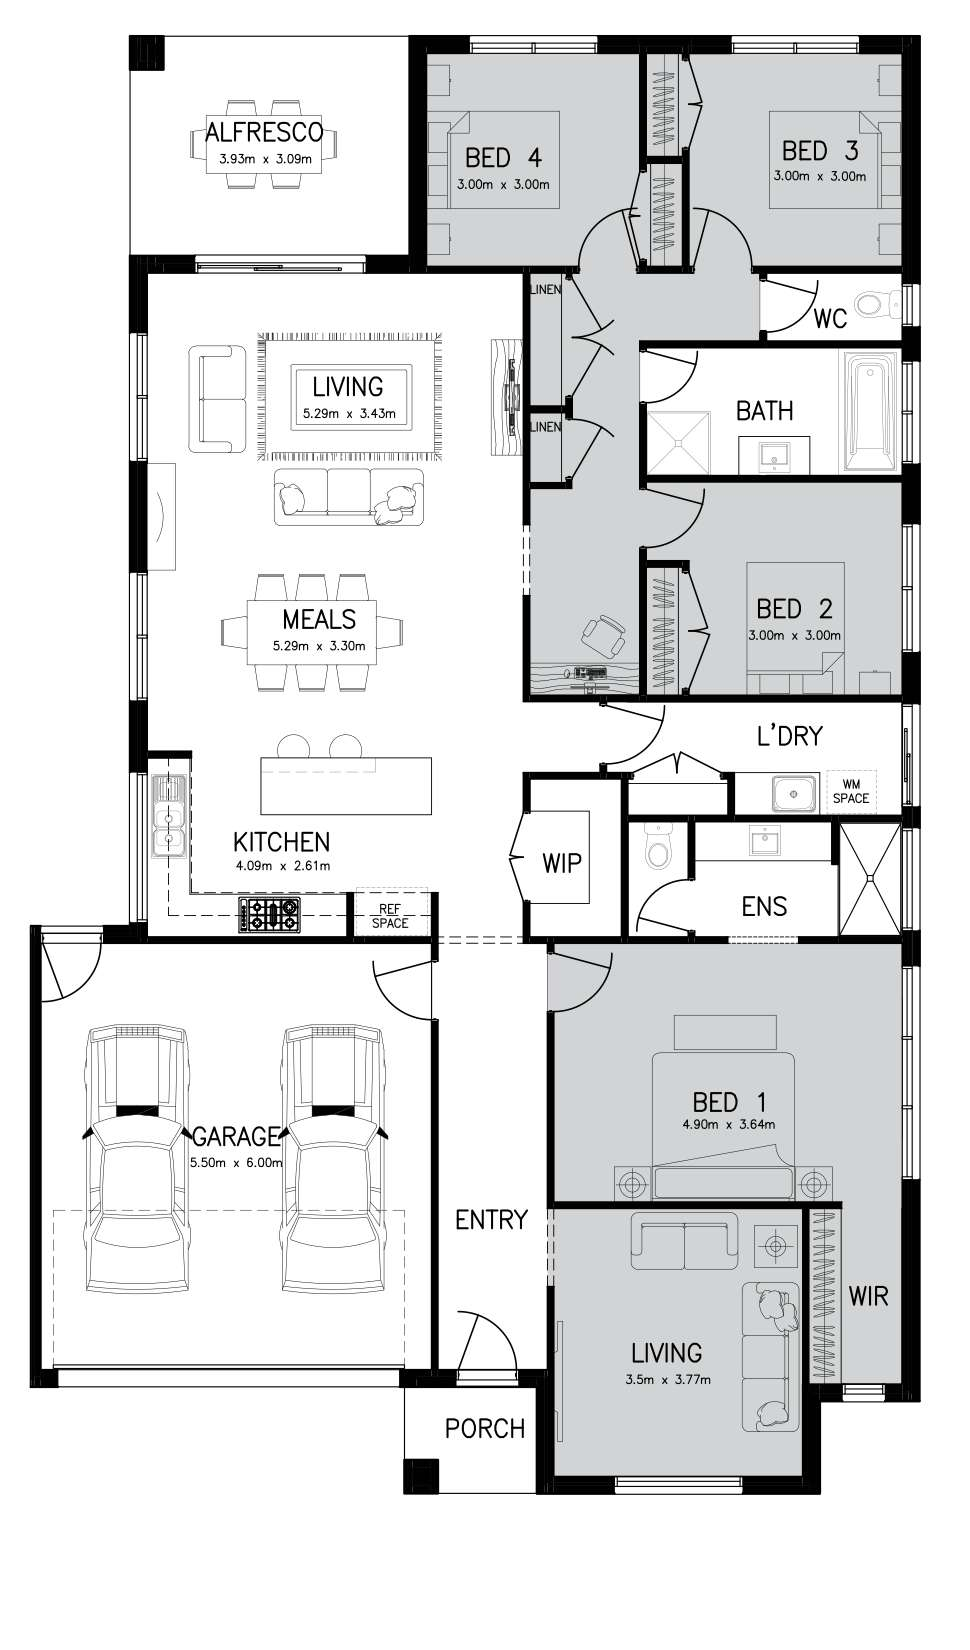 ARLINGTON 25 (GRAND MASTER) Floor Plan